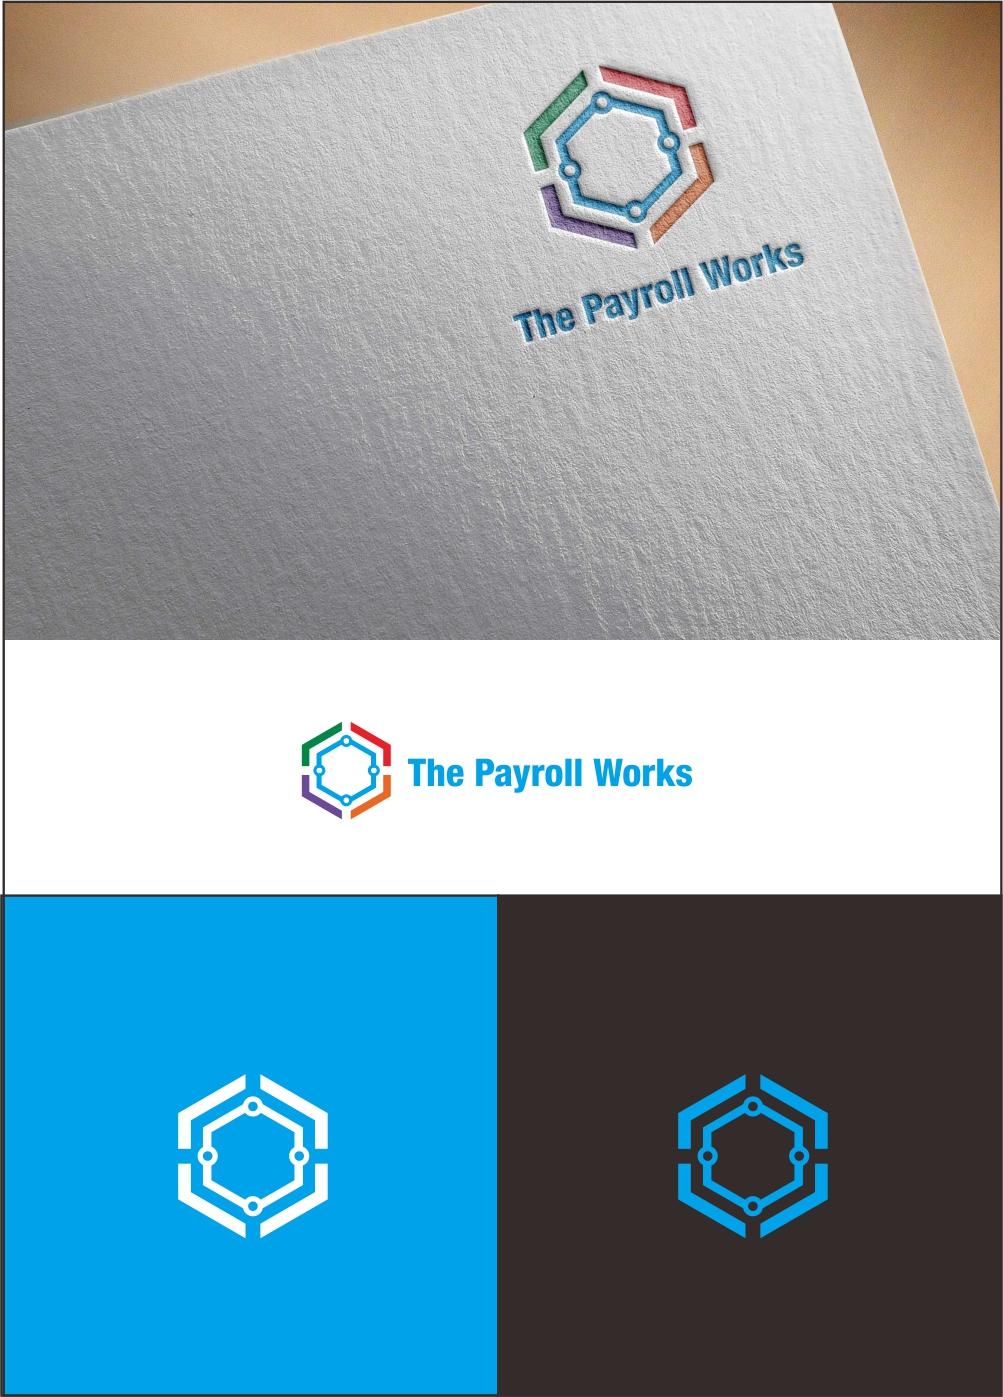 Logo Design by ian69 - Entry No. 26 in the Logo Design Contest Captivating Logo Design for The Payroll Works.